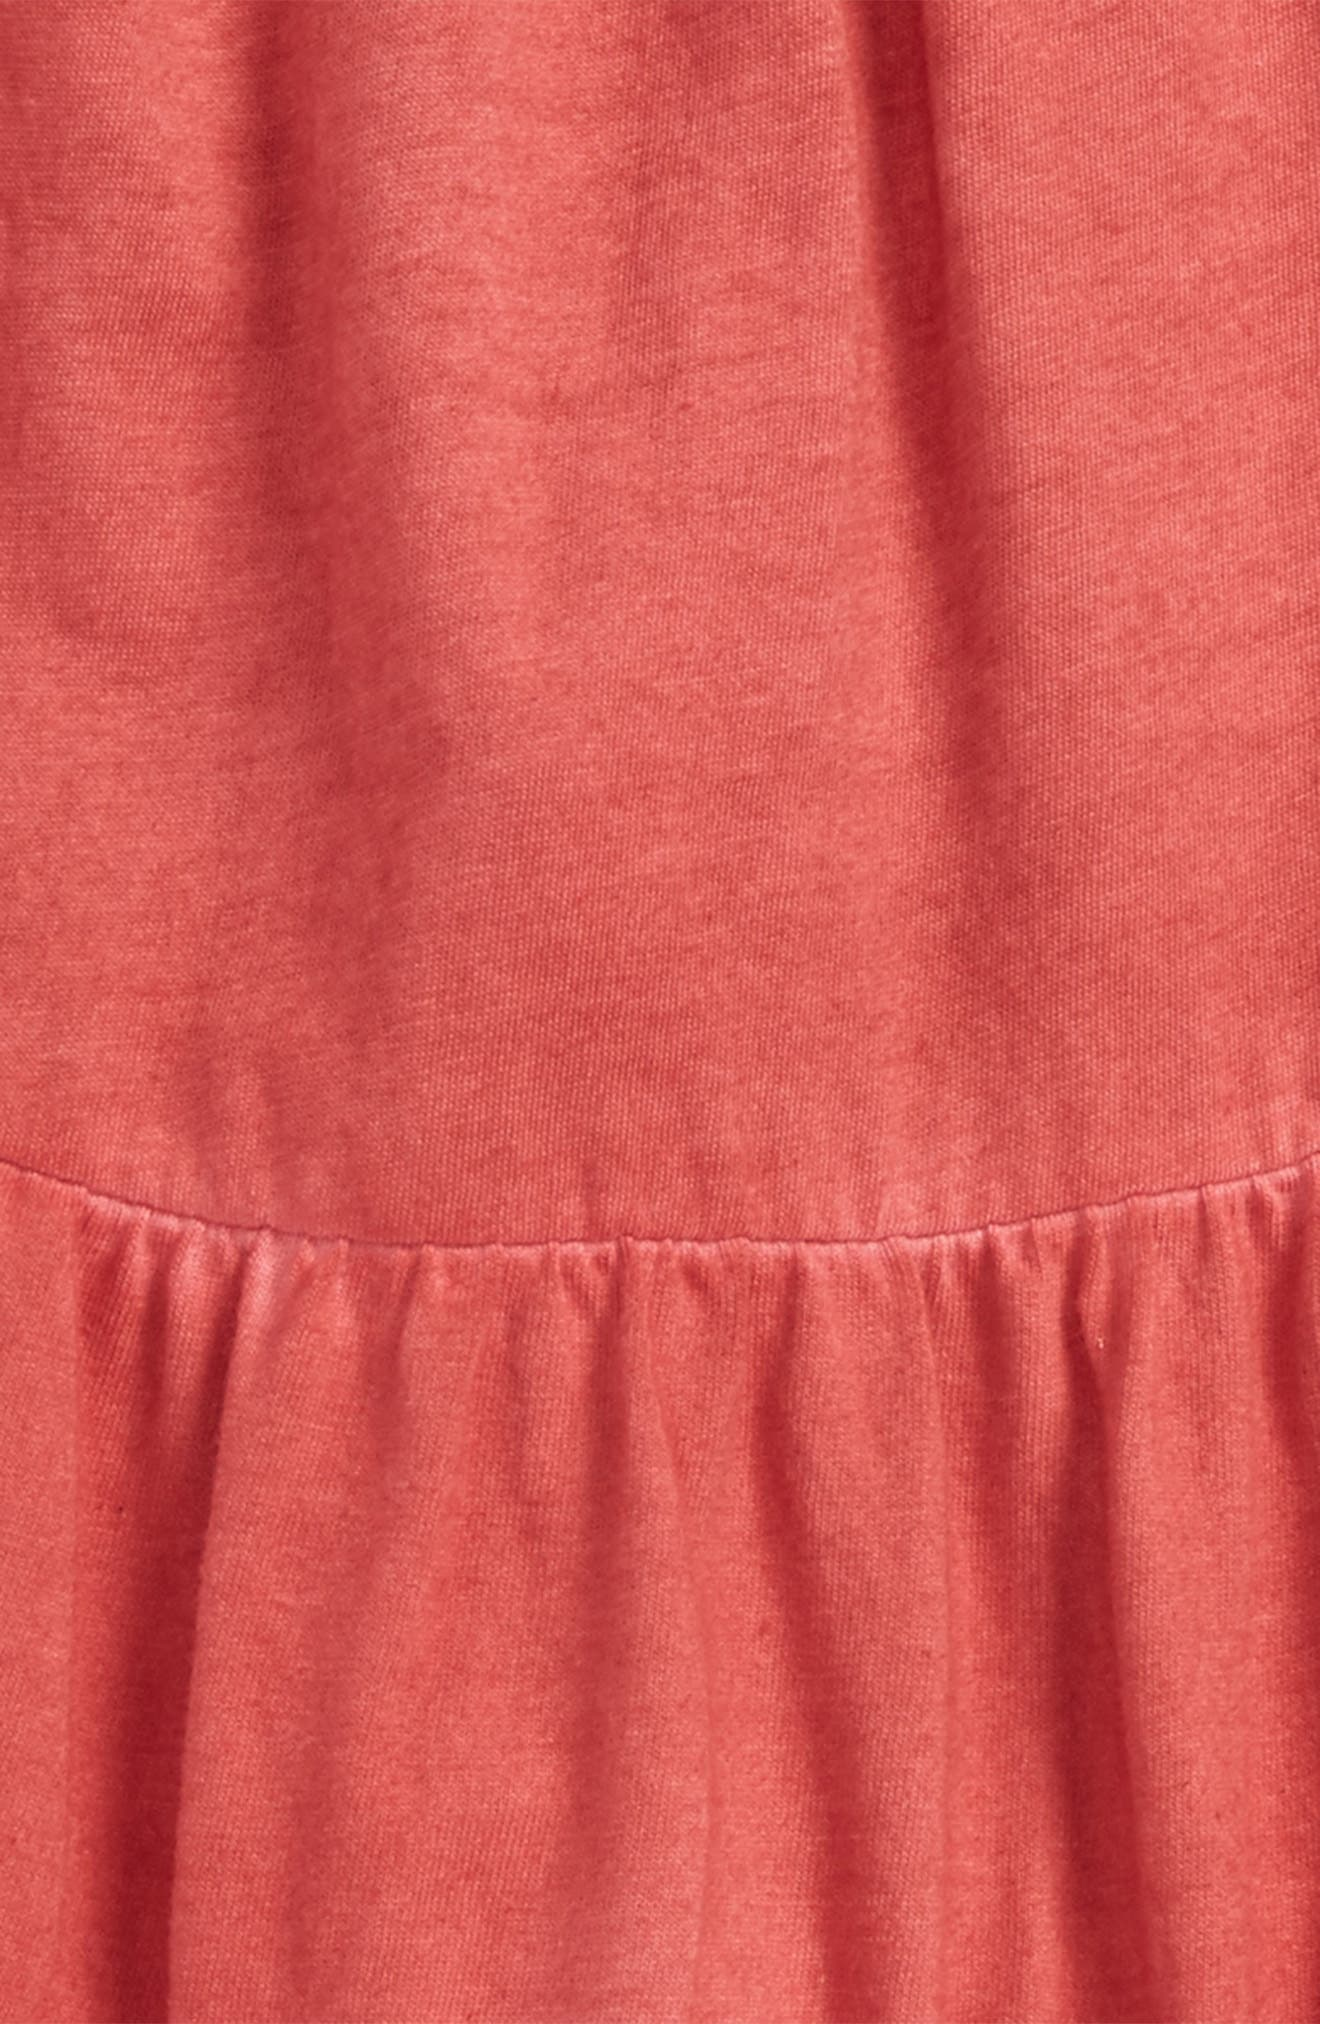 Organic Cotton Tiered Dress,                             Alternate thumbnail 2, color,                             622